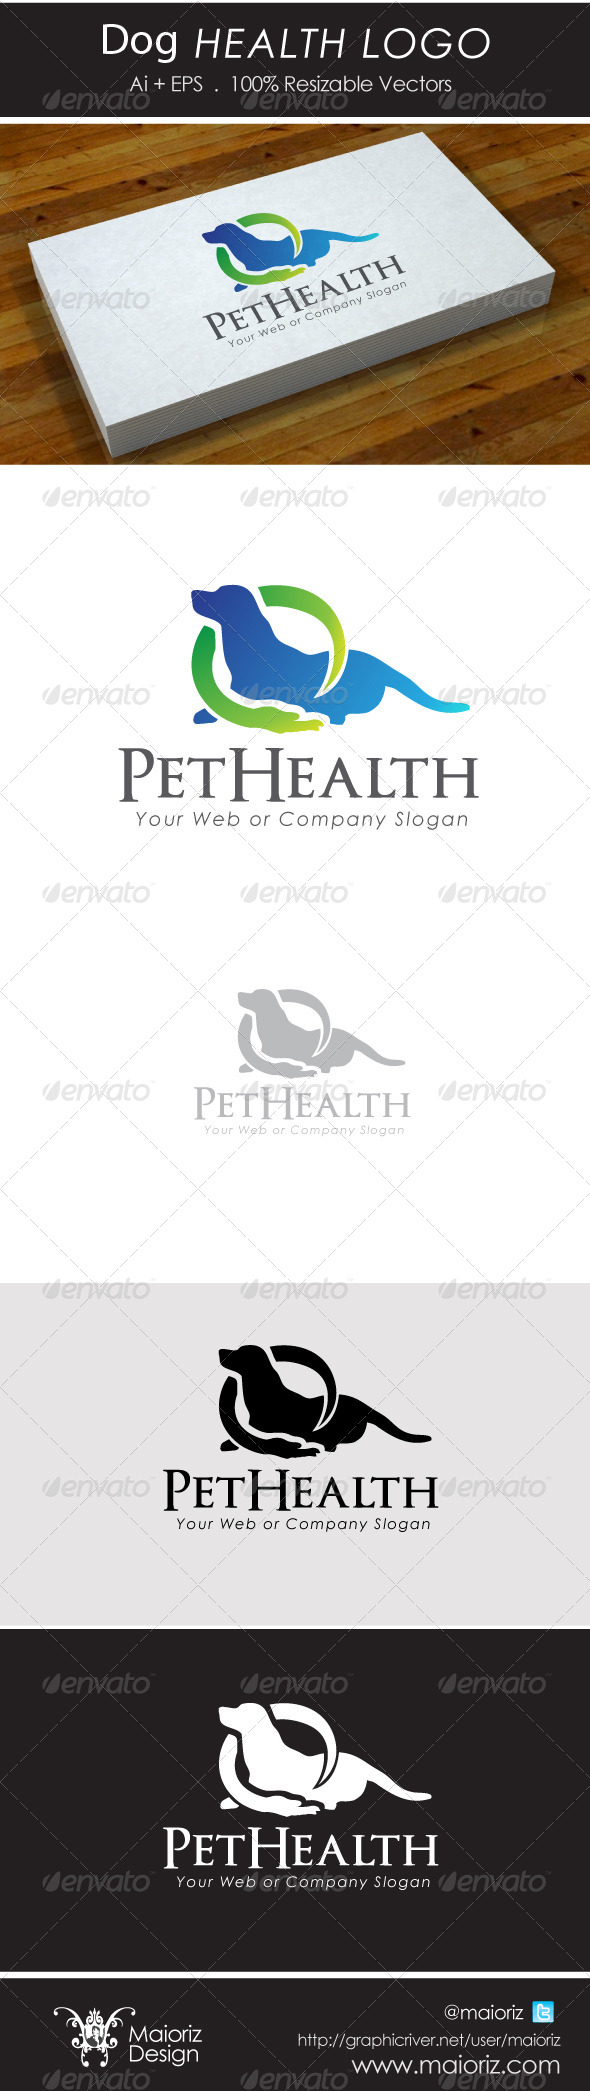 GraphicRiver Dog Health Logo 5114109